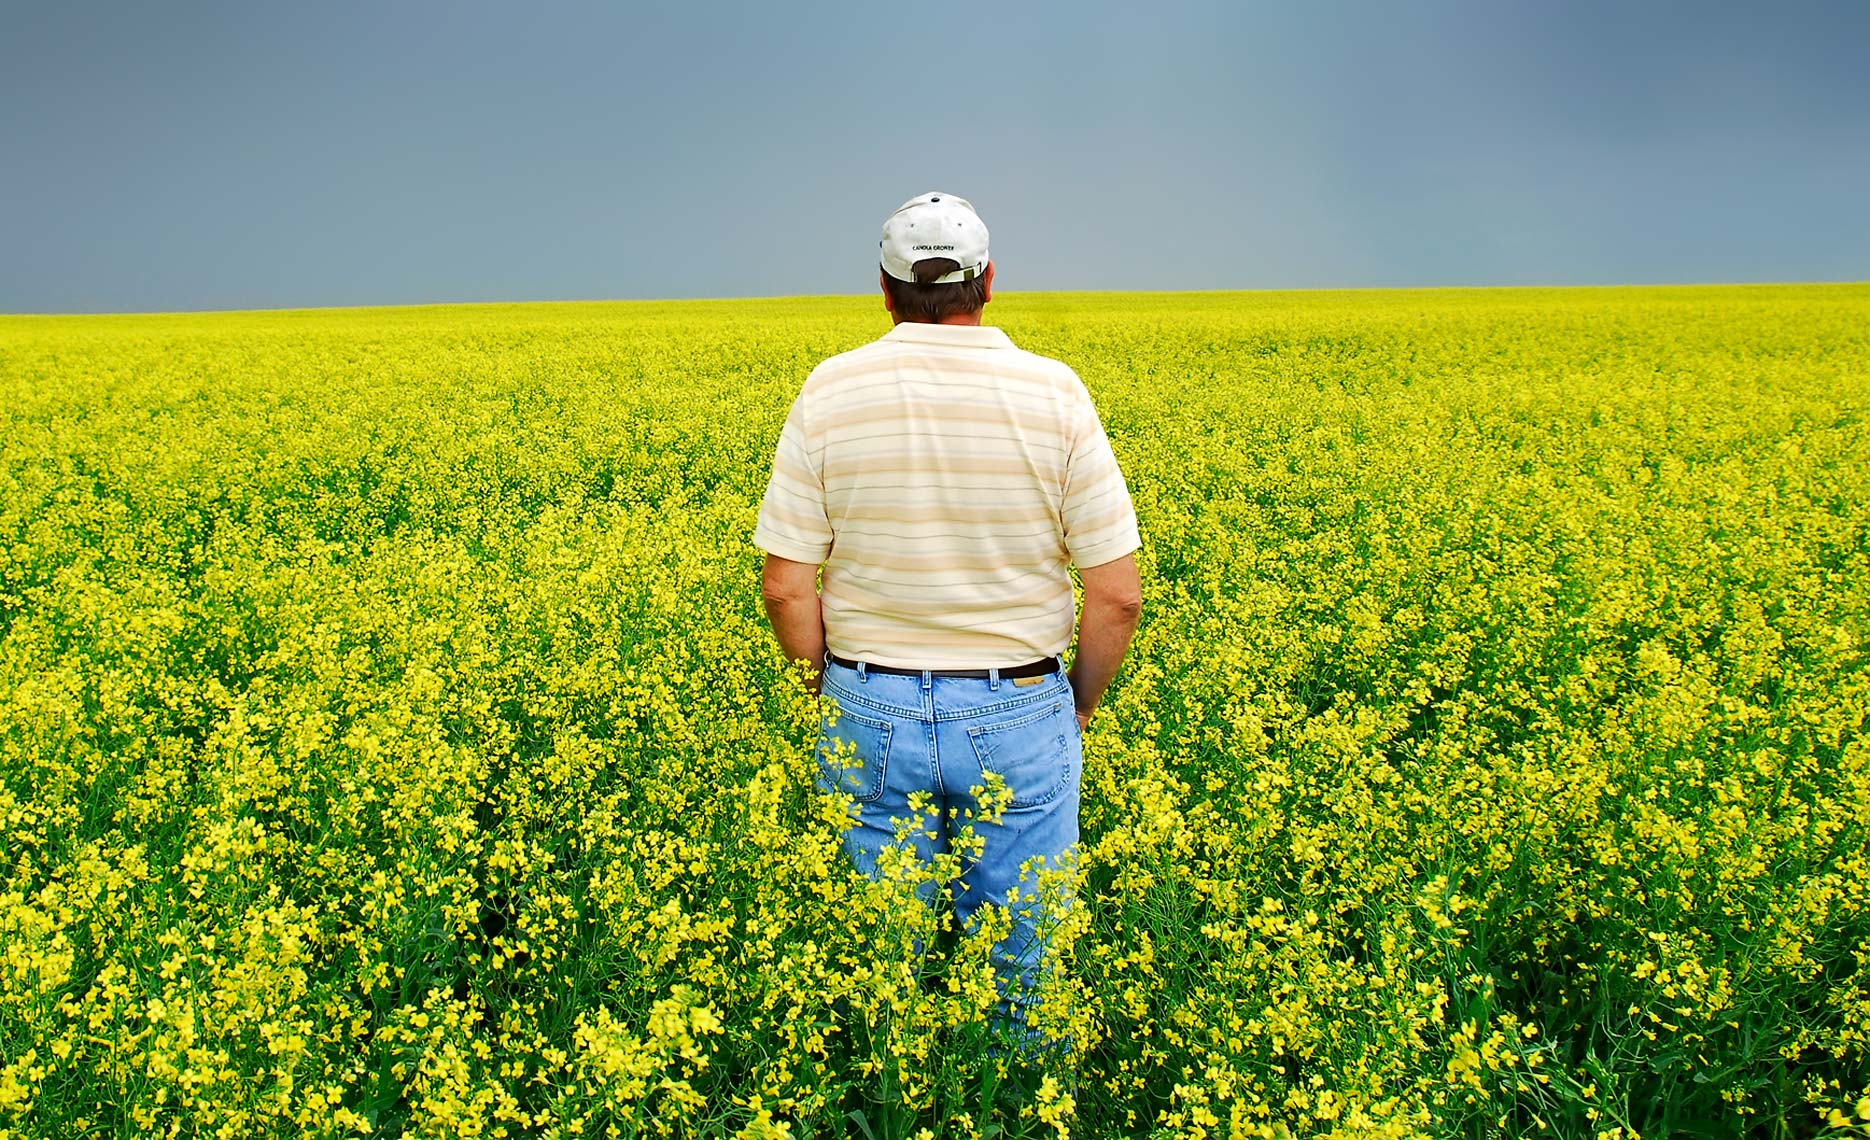 A photo of a North Dakota canola farmer taken by North Dakota commercial photographer Dan Koeck.